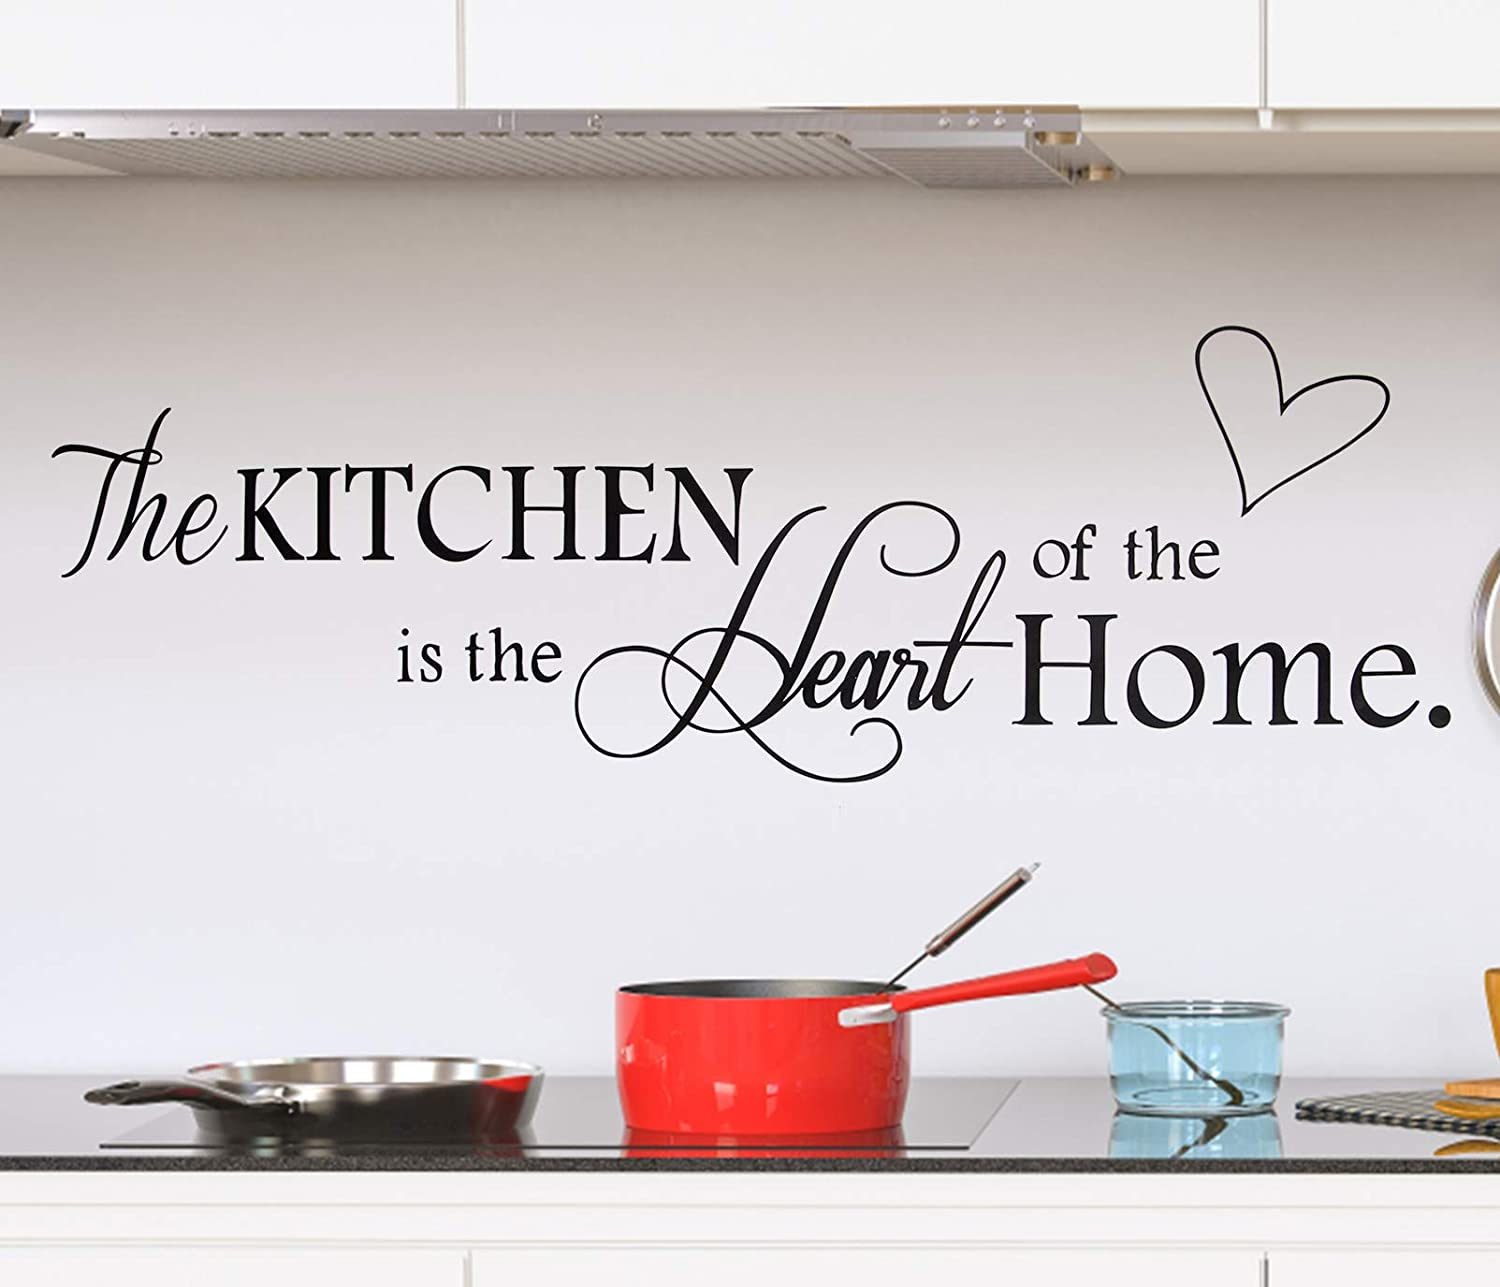 Unves Wall Stickers, Quote Wall Stickers for Kitchen, Wall Decals for Home, Kitchen Art Decorations Vinyl Home Décor ('The Kitchen')